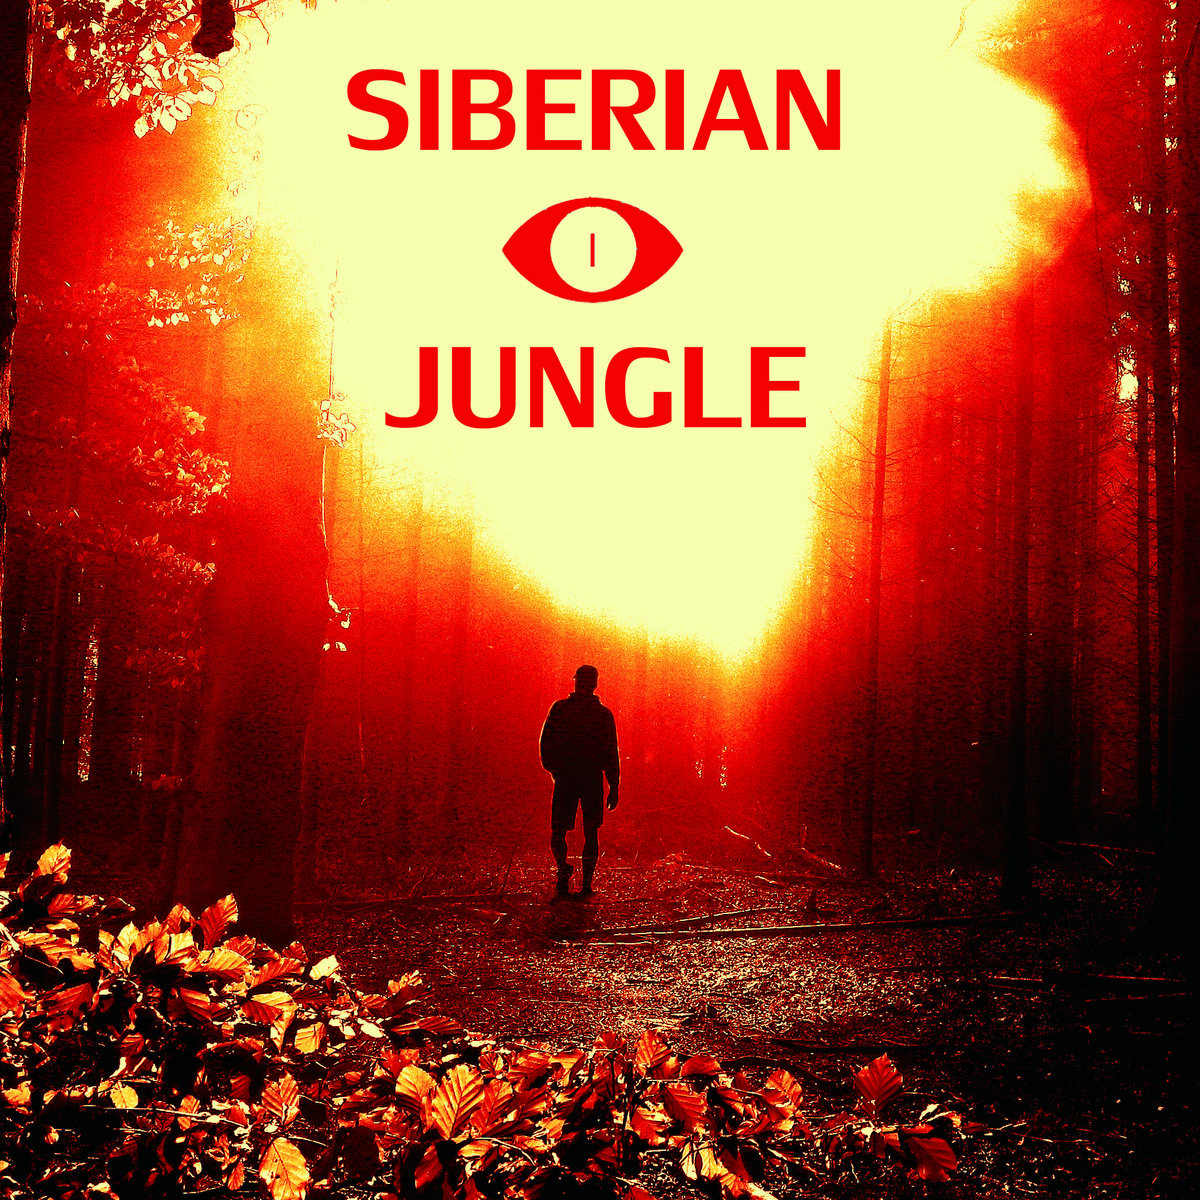 3D Stas - K1n (Edit) @ 'Siberian Jungle - Volume 1' album (atmospheric drum'n'bass, electronic)